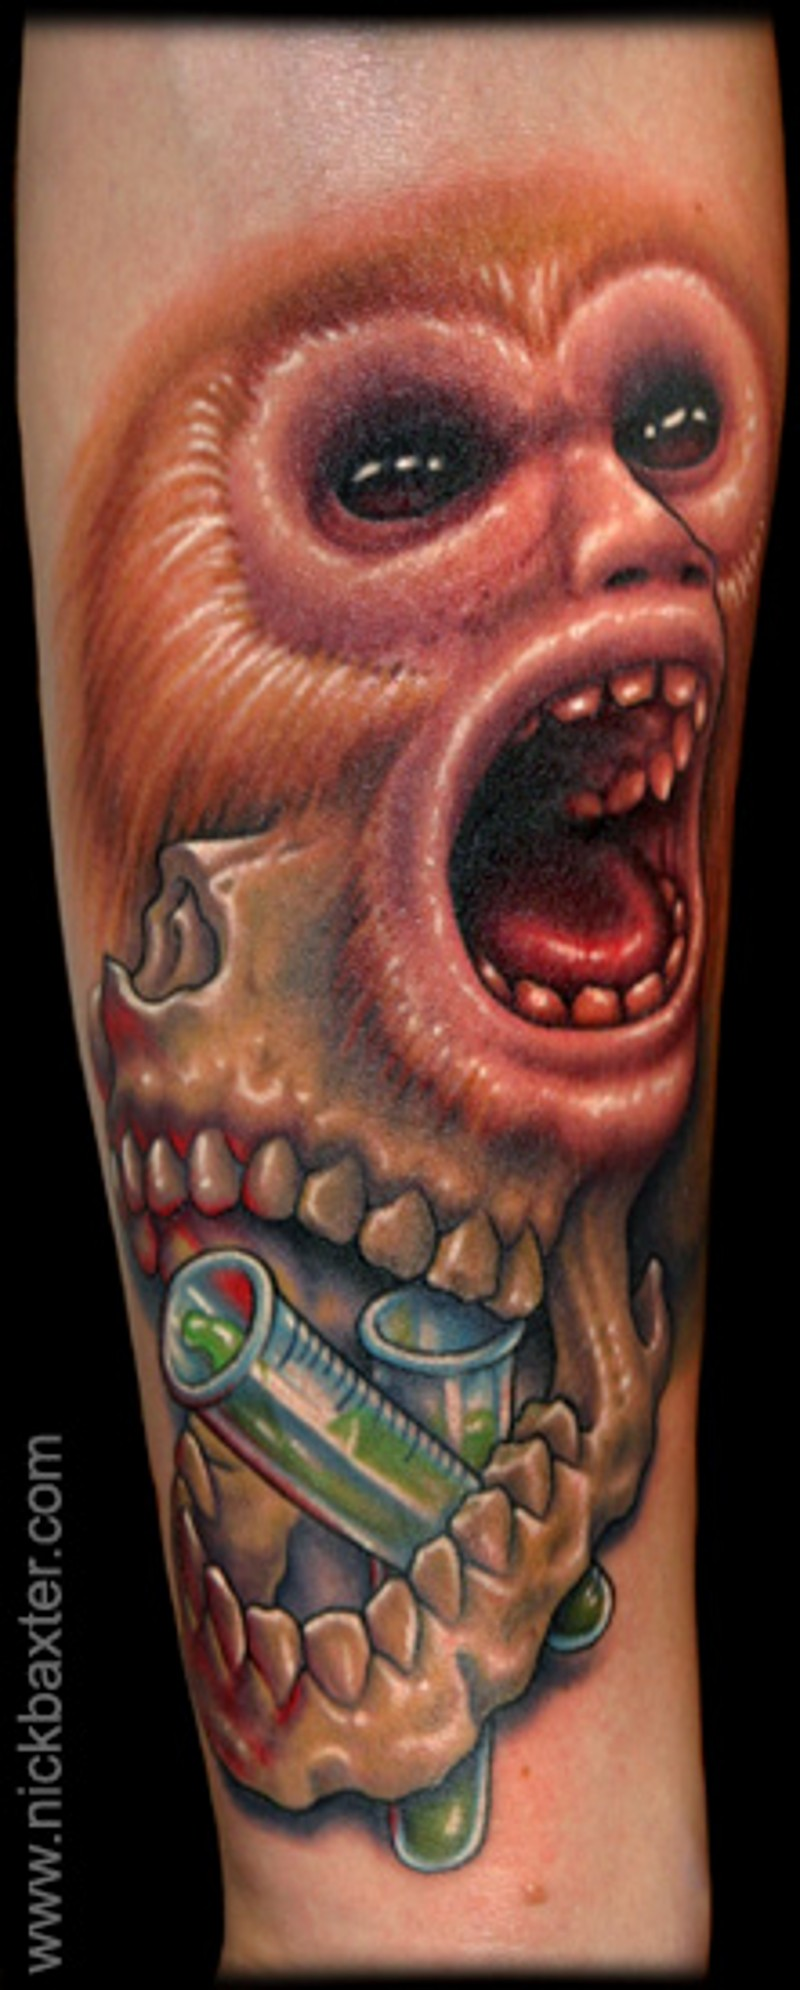 Unusual combined alive monkey face tattoo on forearm combined with skull and tubes